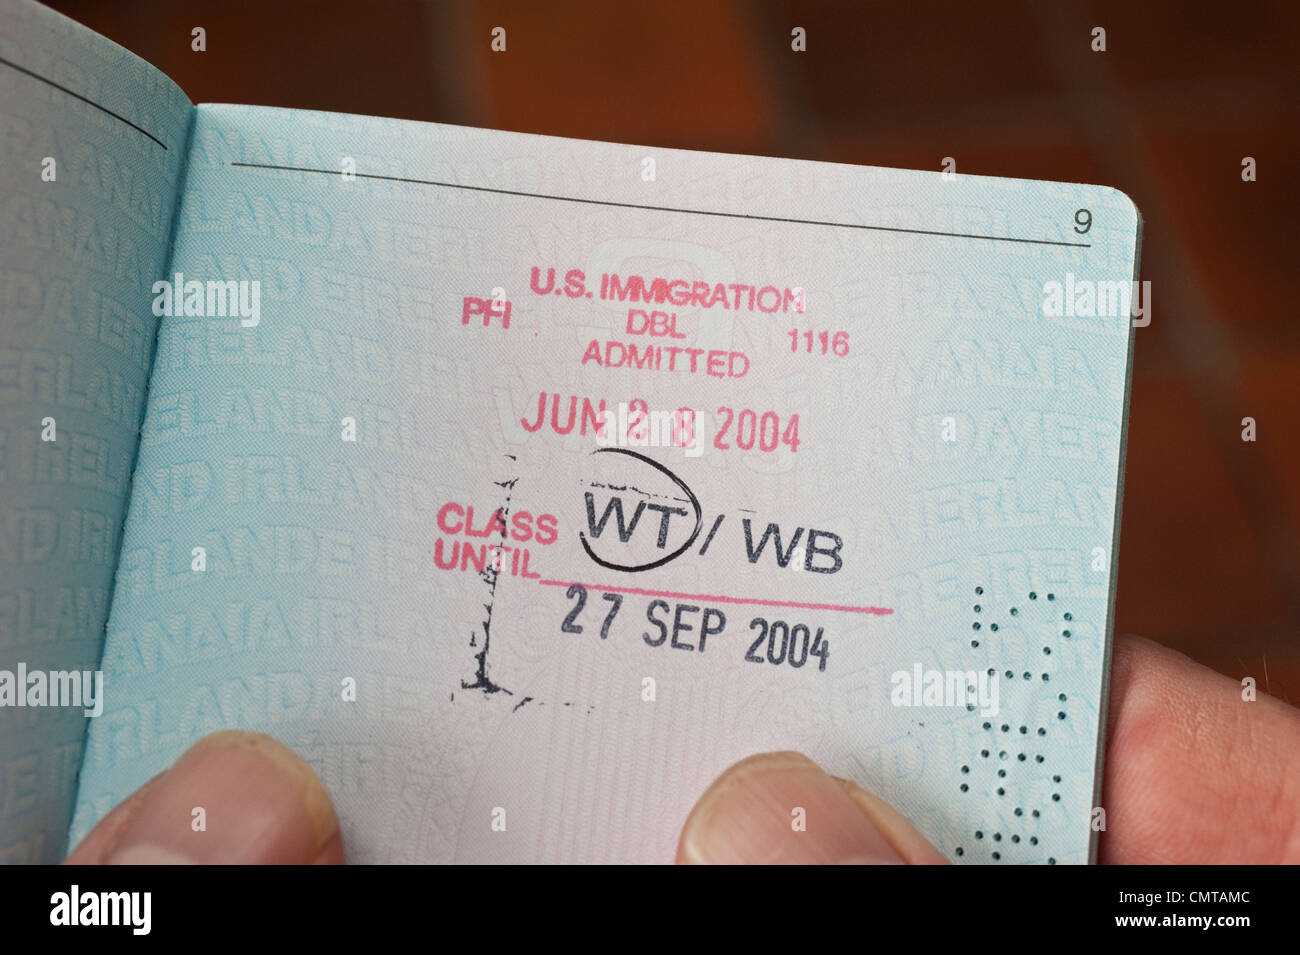 Immigration entry stamps for the United States of America ( USA ) on a passport page - Stock Image